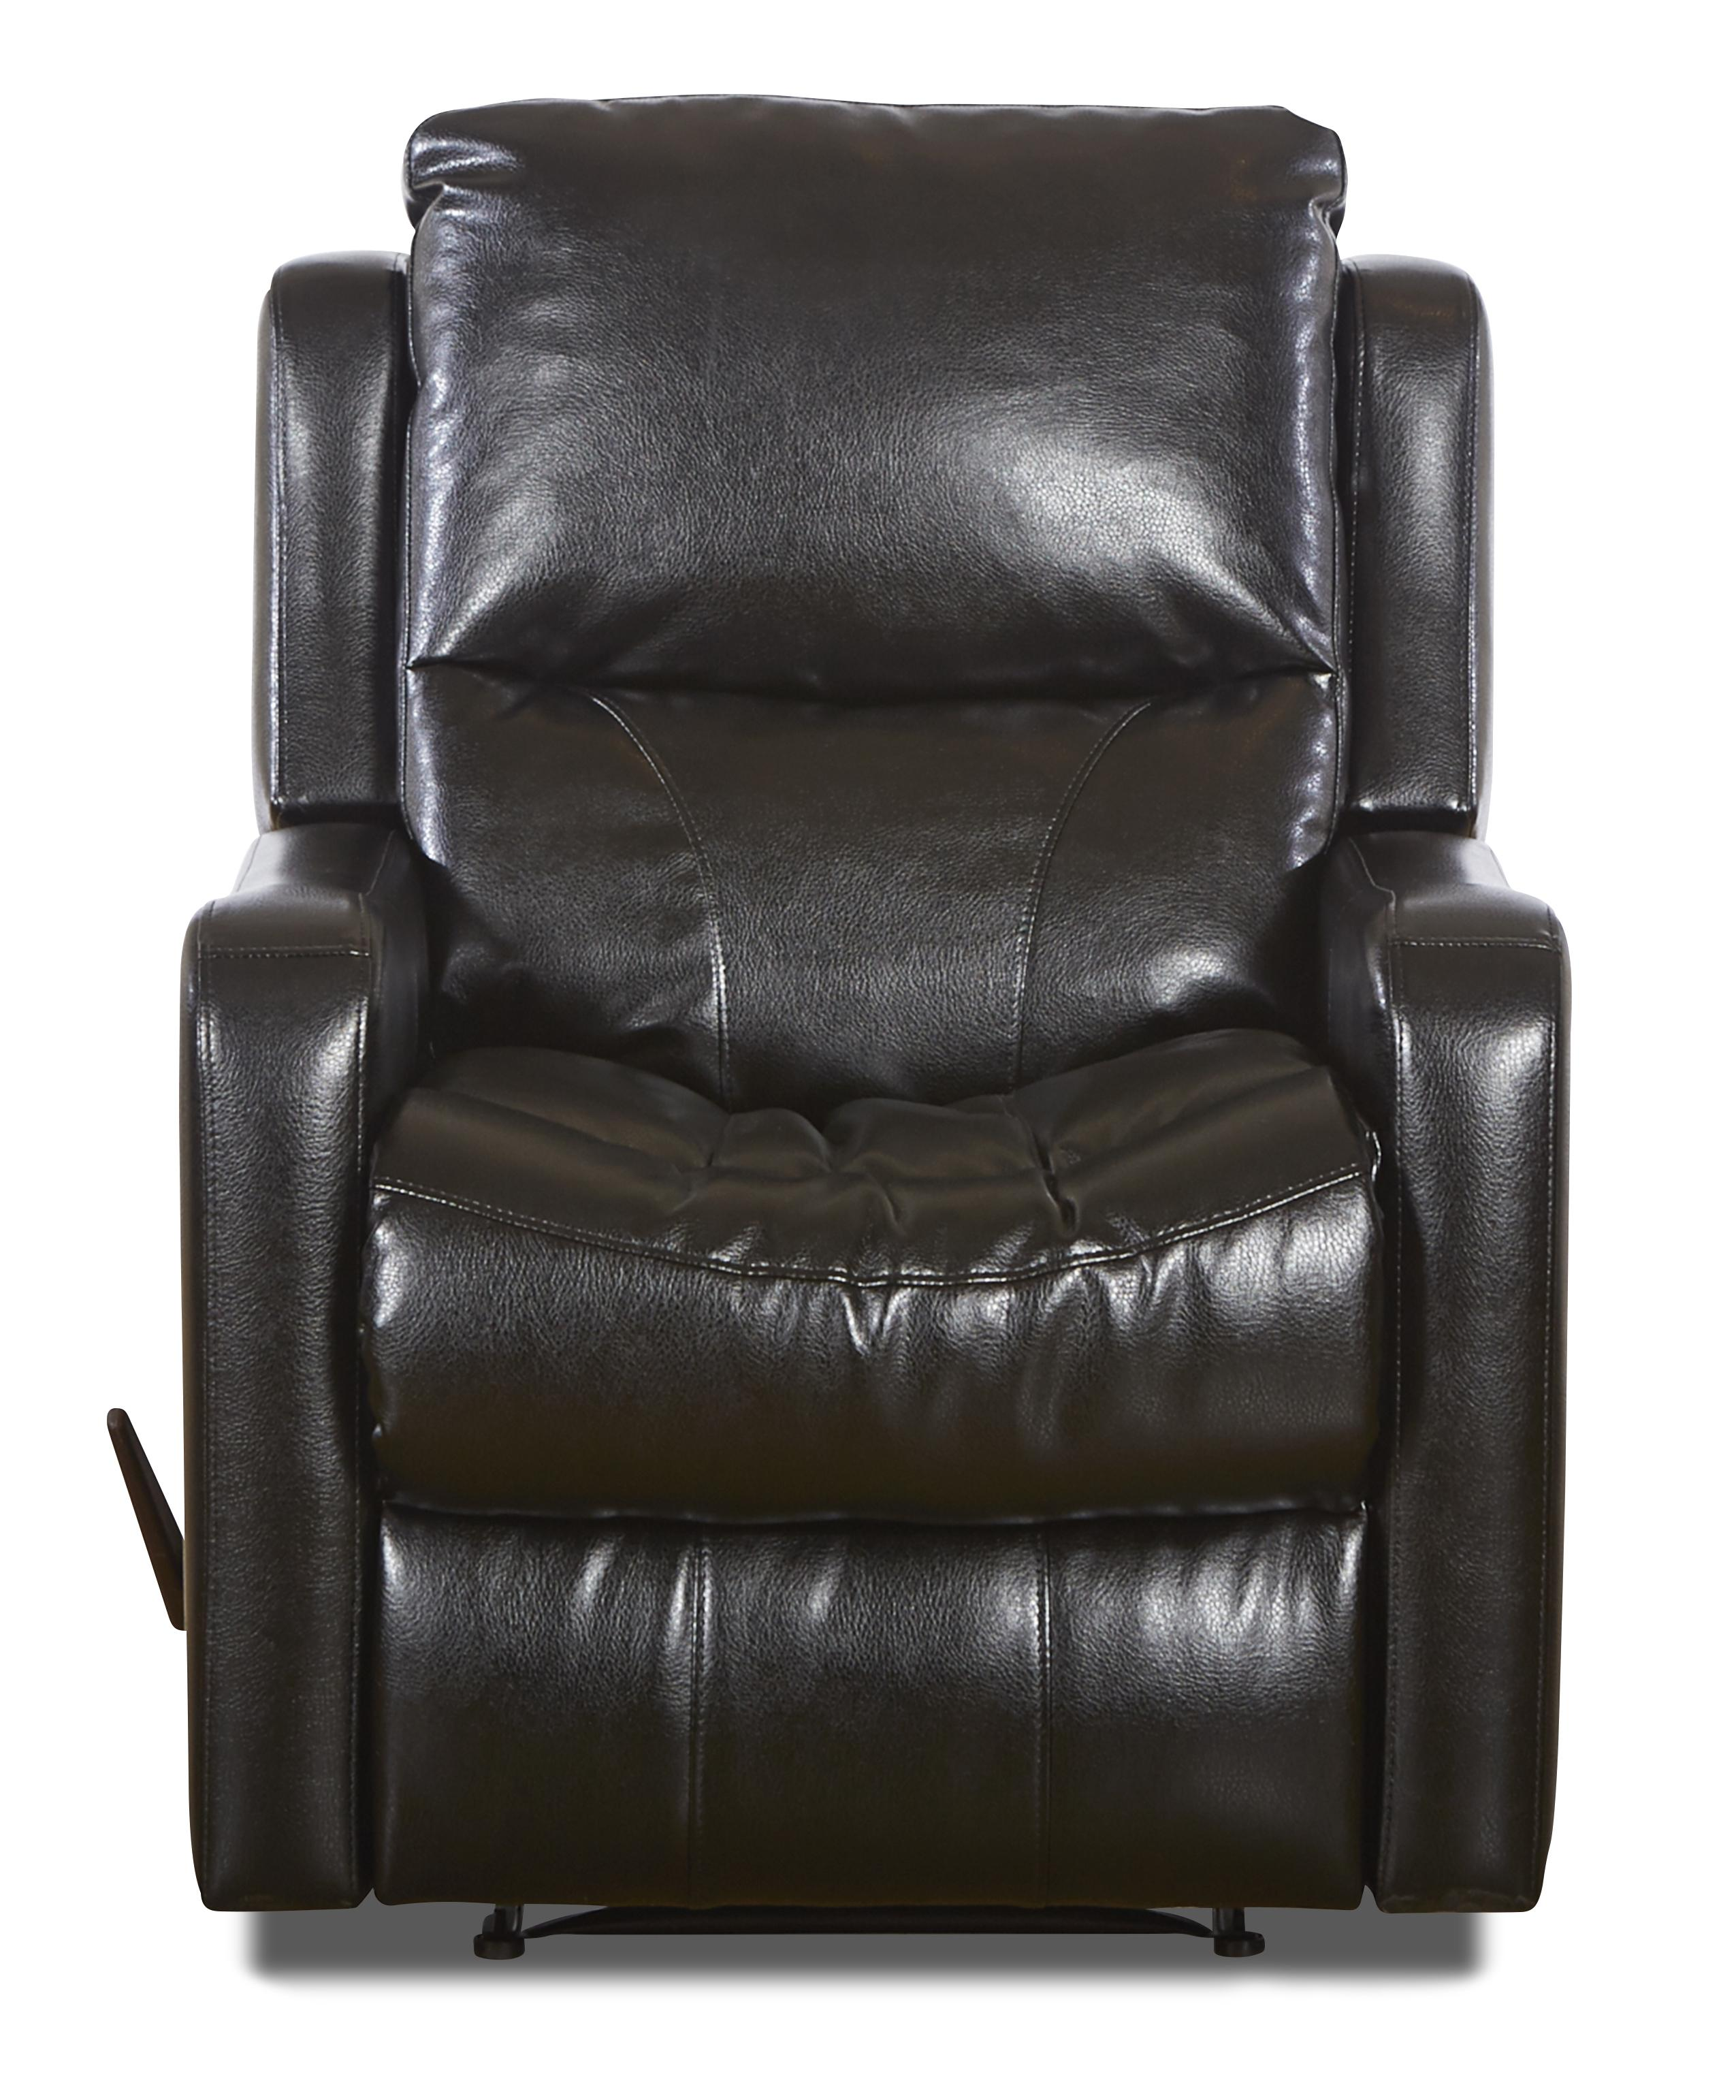 Klaussner Cruiser Transitional Reclining Chair - Item Number: LBV82903H RC-HudsonBlack